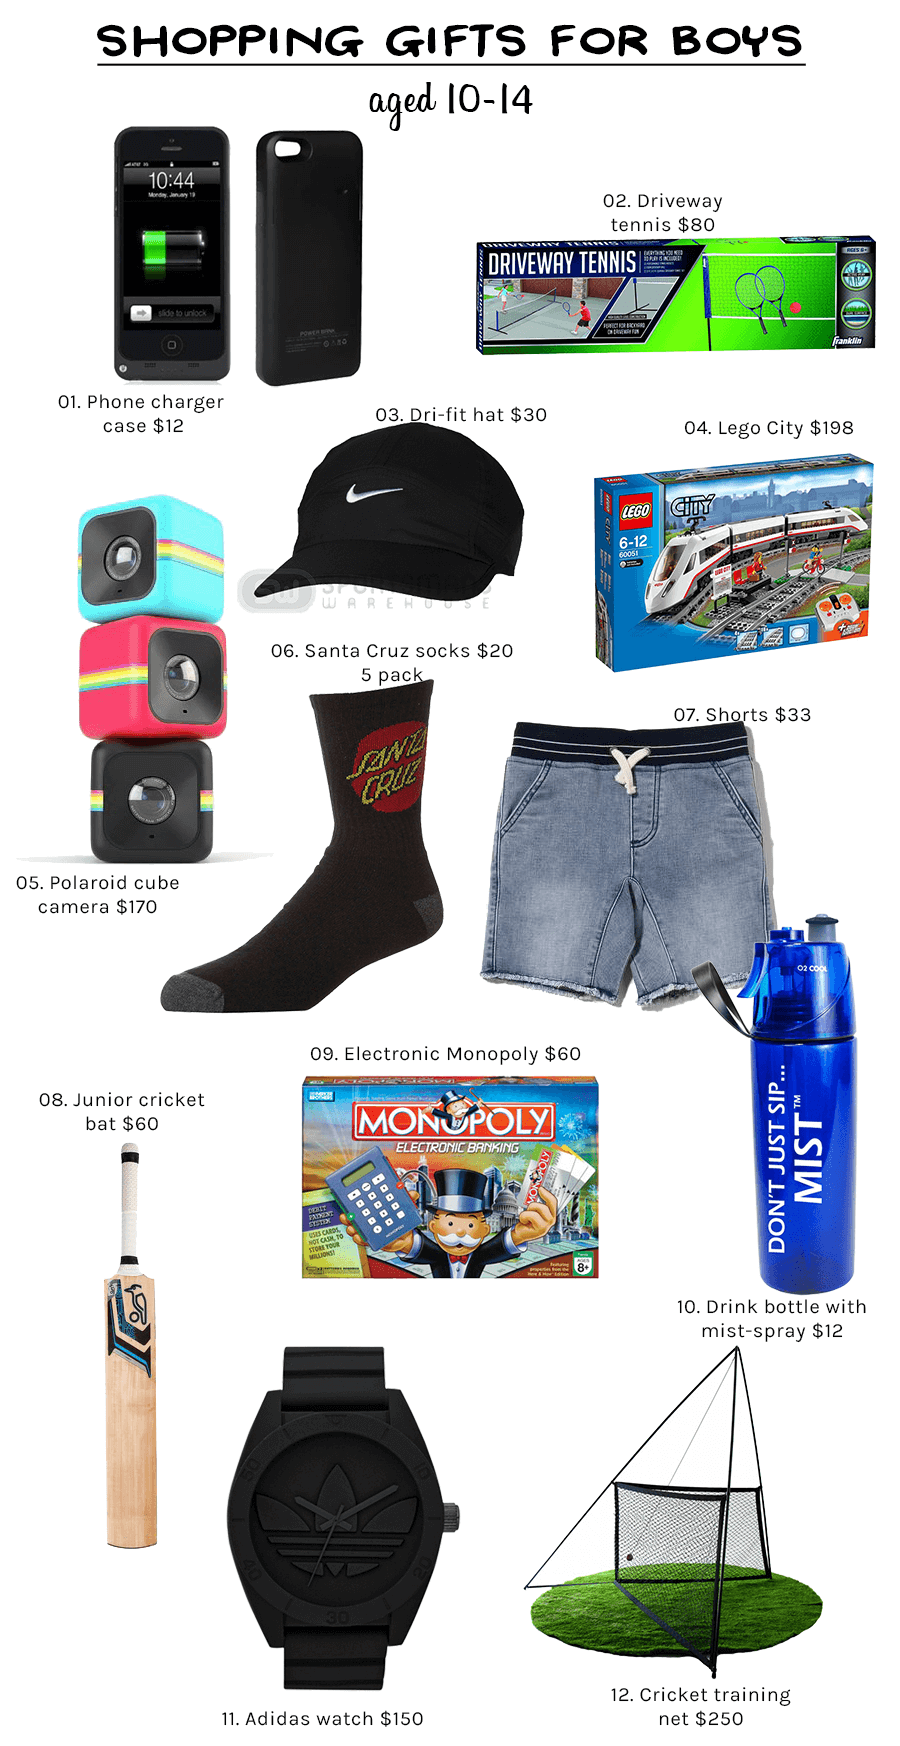 Shopping Gifts for BOYS aged 10-14